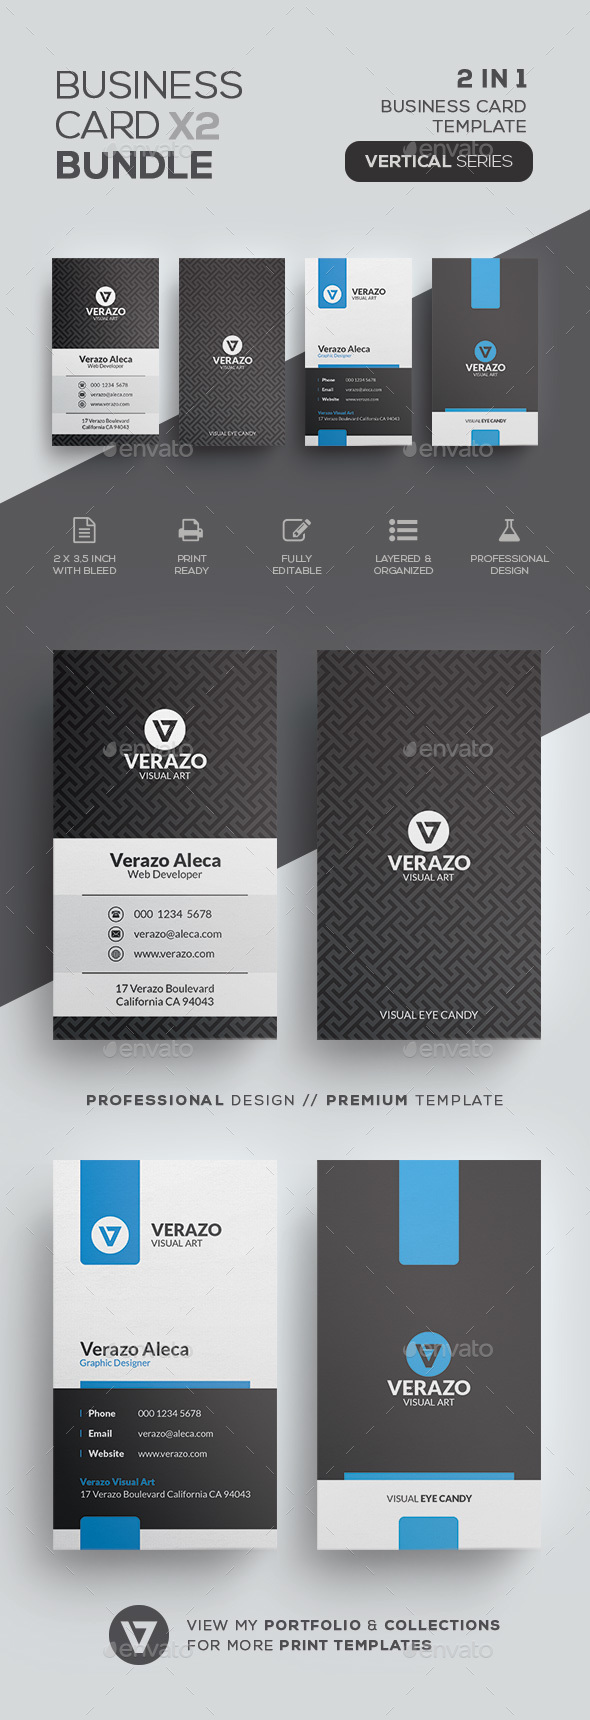 Corporate business card templates designs from graphicriver friedricerecipe Gallery